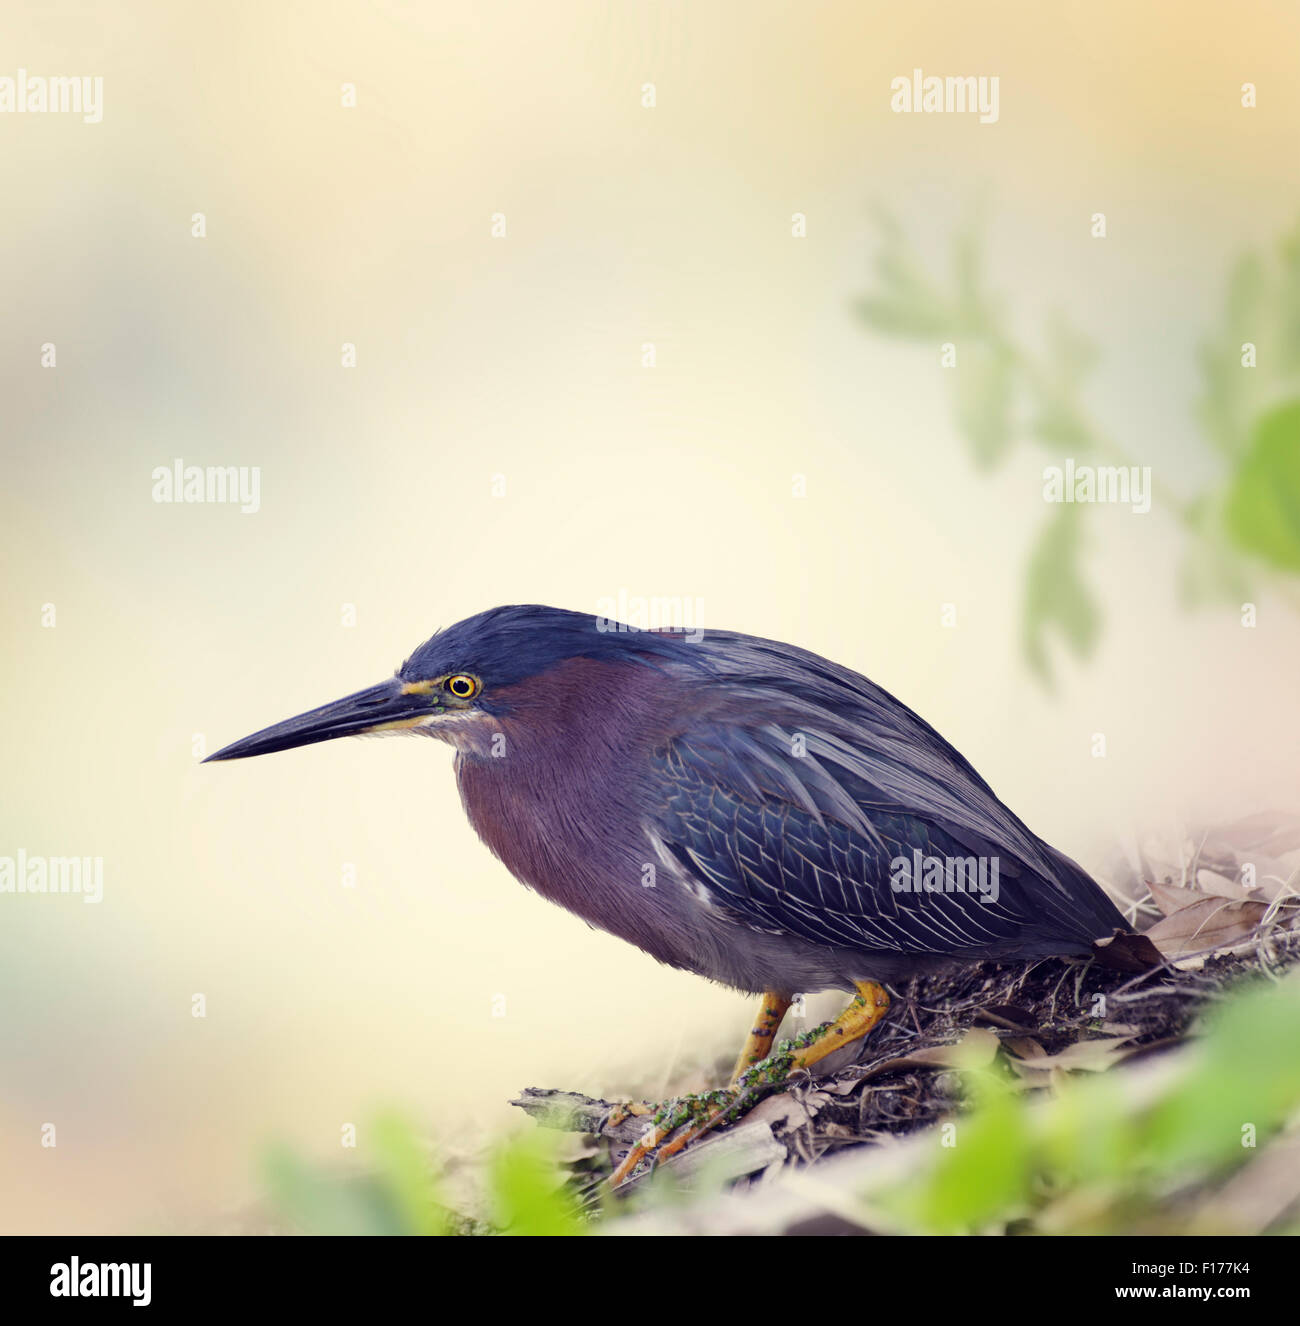 Green Heron in Florida Wetlands - Stock Image